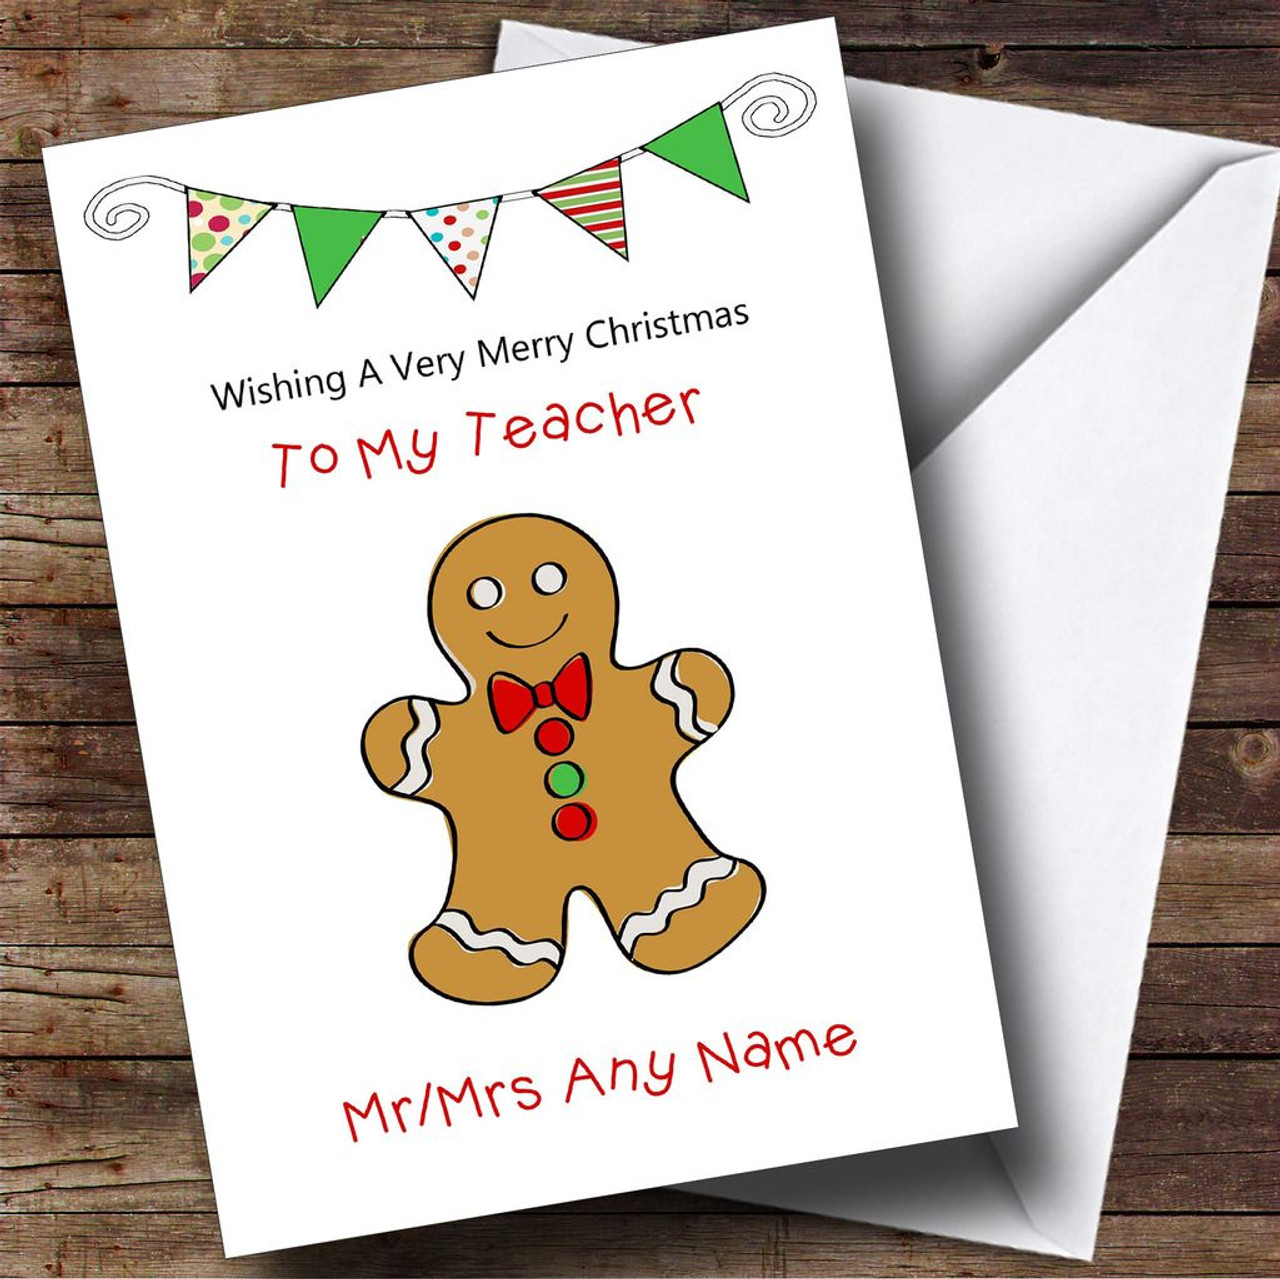 Doodle gingerbread man teacher personalised christmas card the doodle gingerbread man teacher personalised christmas card kristyandbryce Image collections